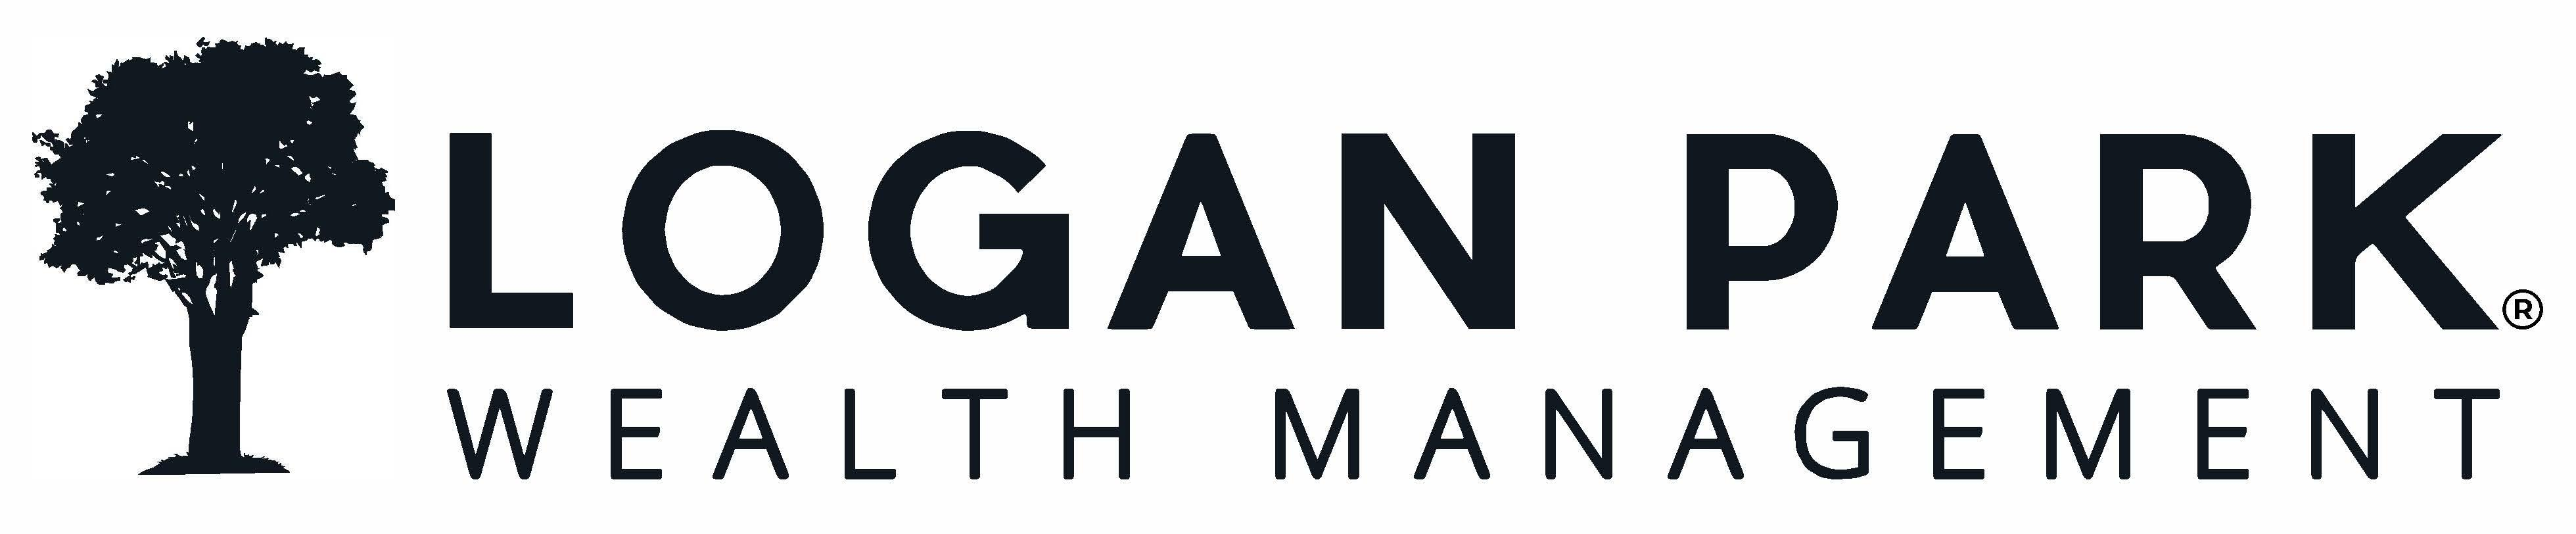 Logan Park Wealth Management